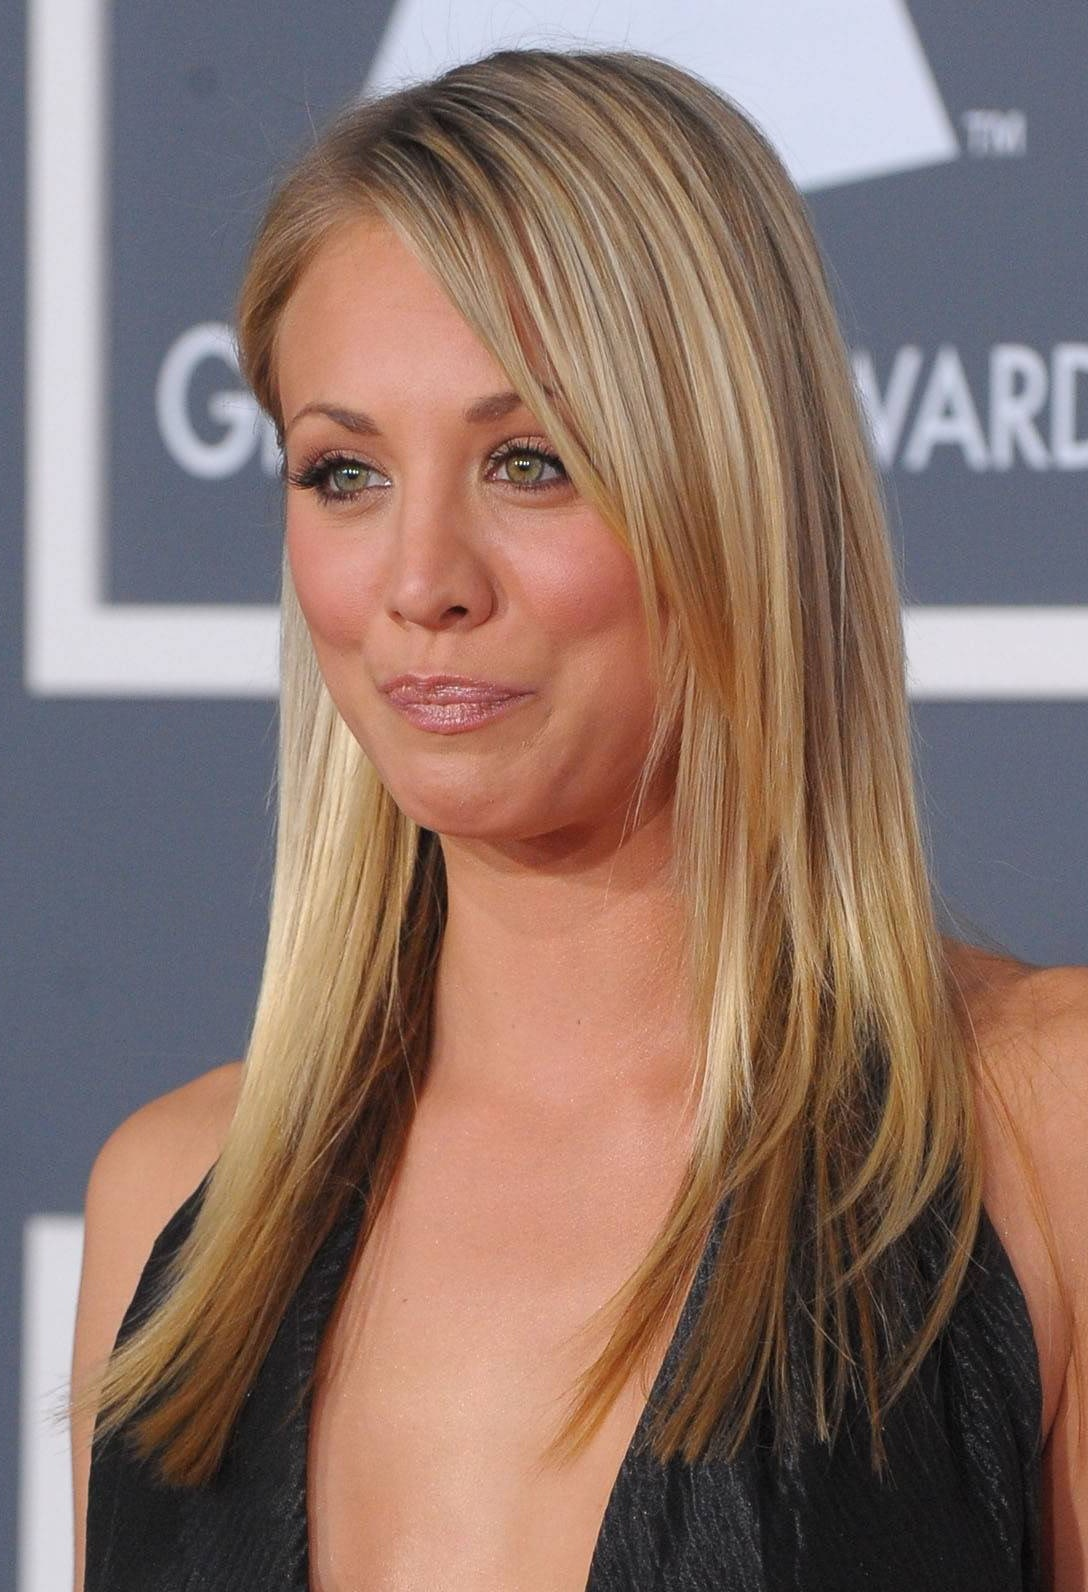 Kaley Cuoco Long Straight Hair